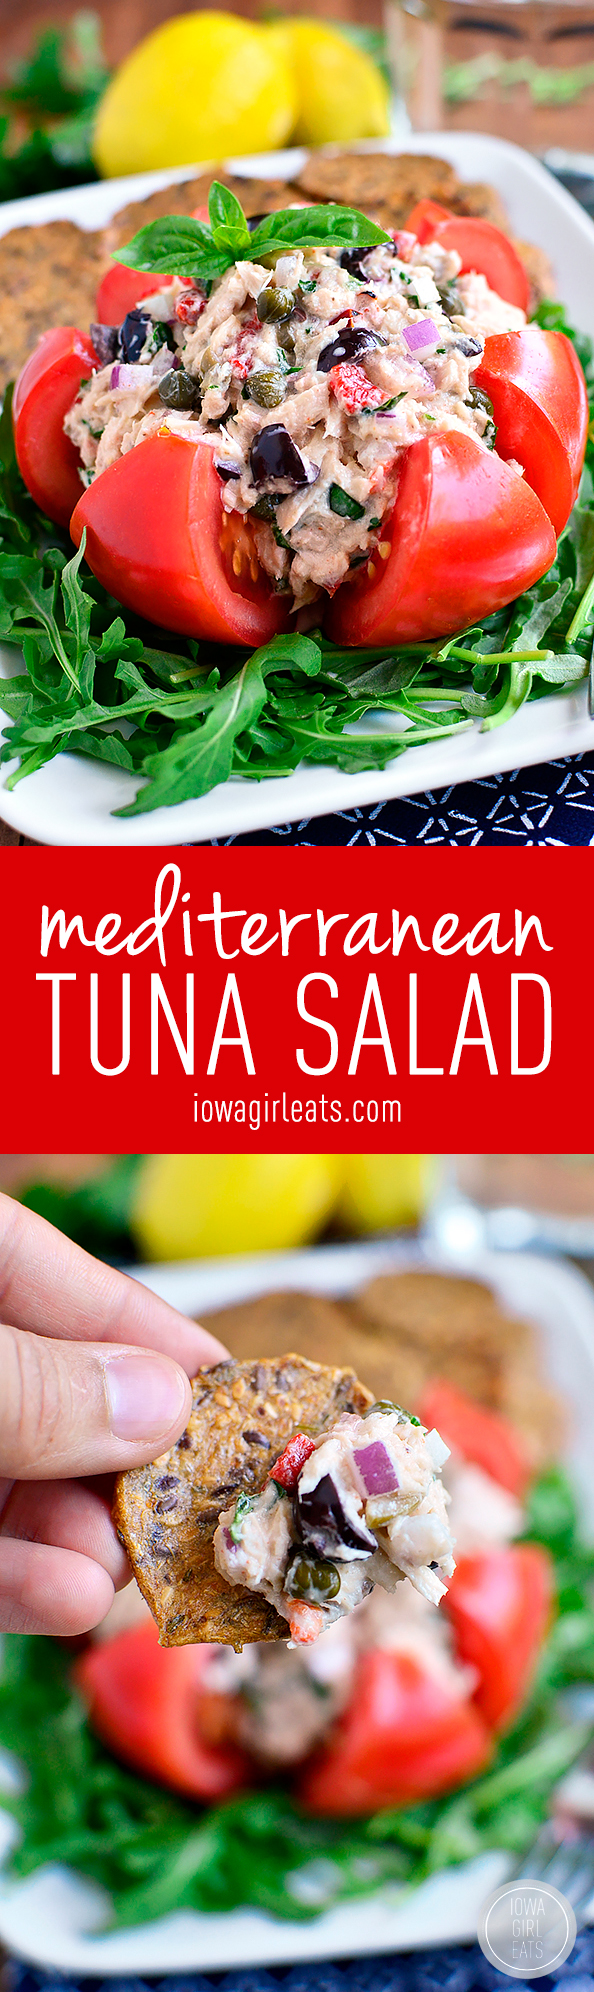 Mediterranean Tuna Salad is fresh and light - serve in a tomato, on a ...